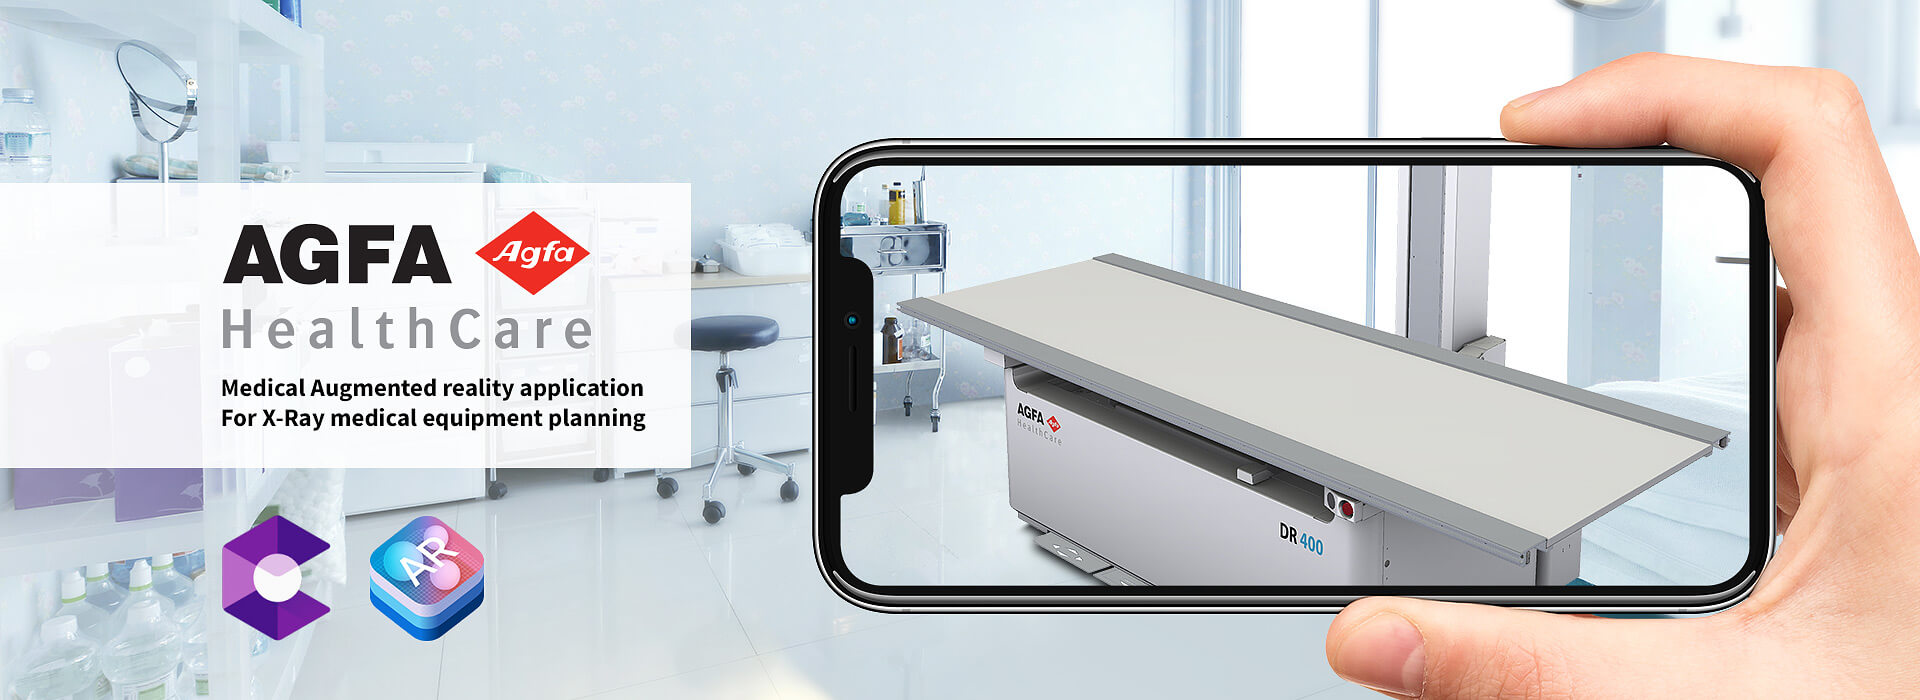 AGFA medical augmented reality application